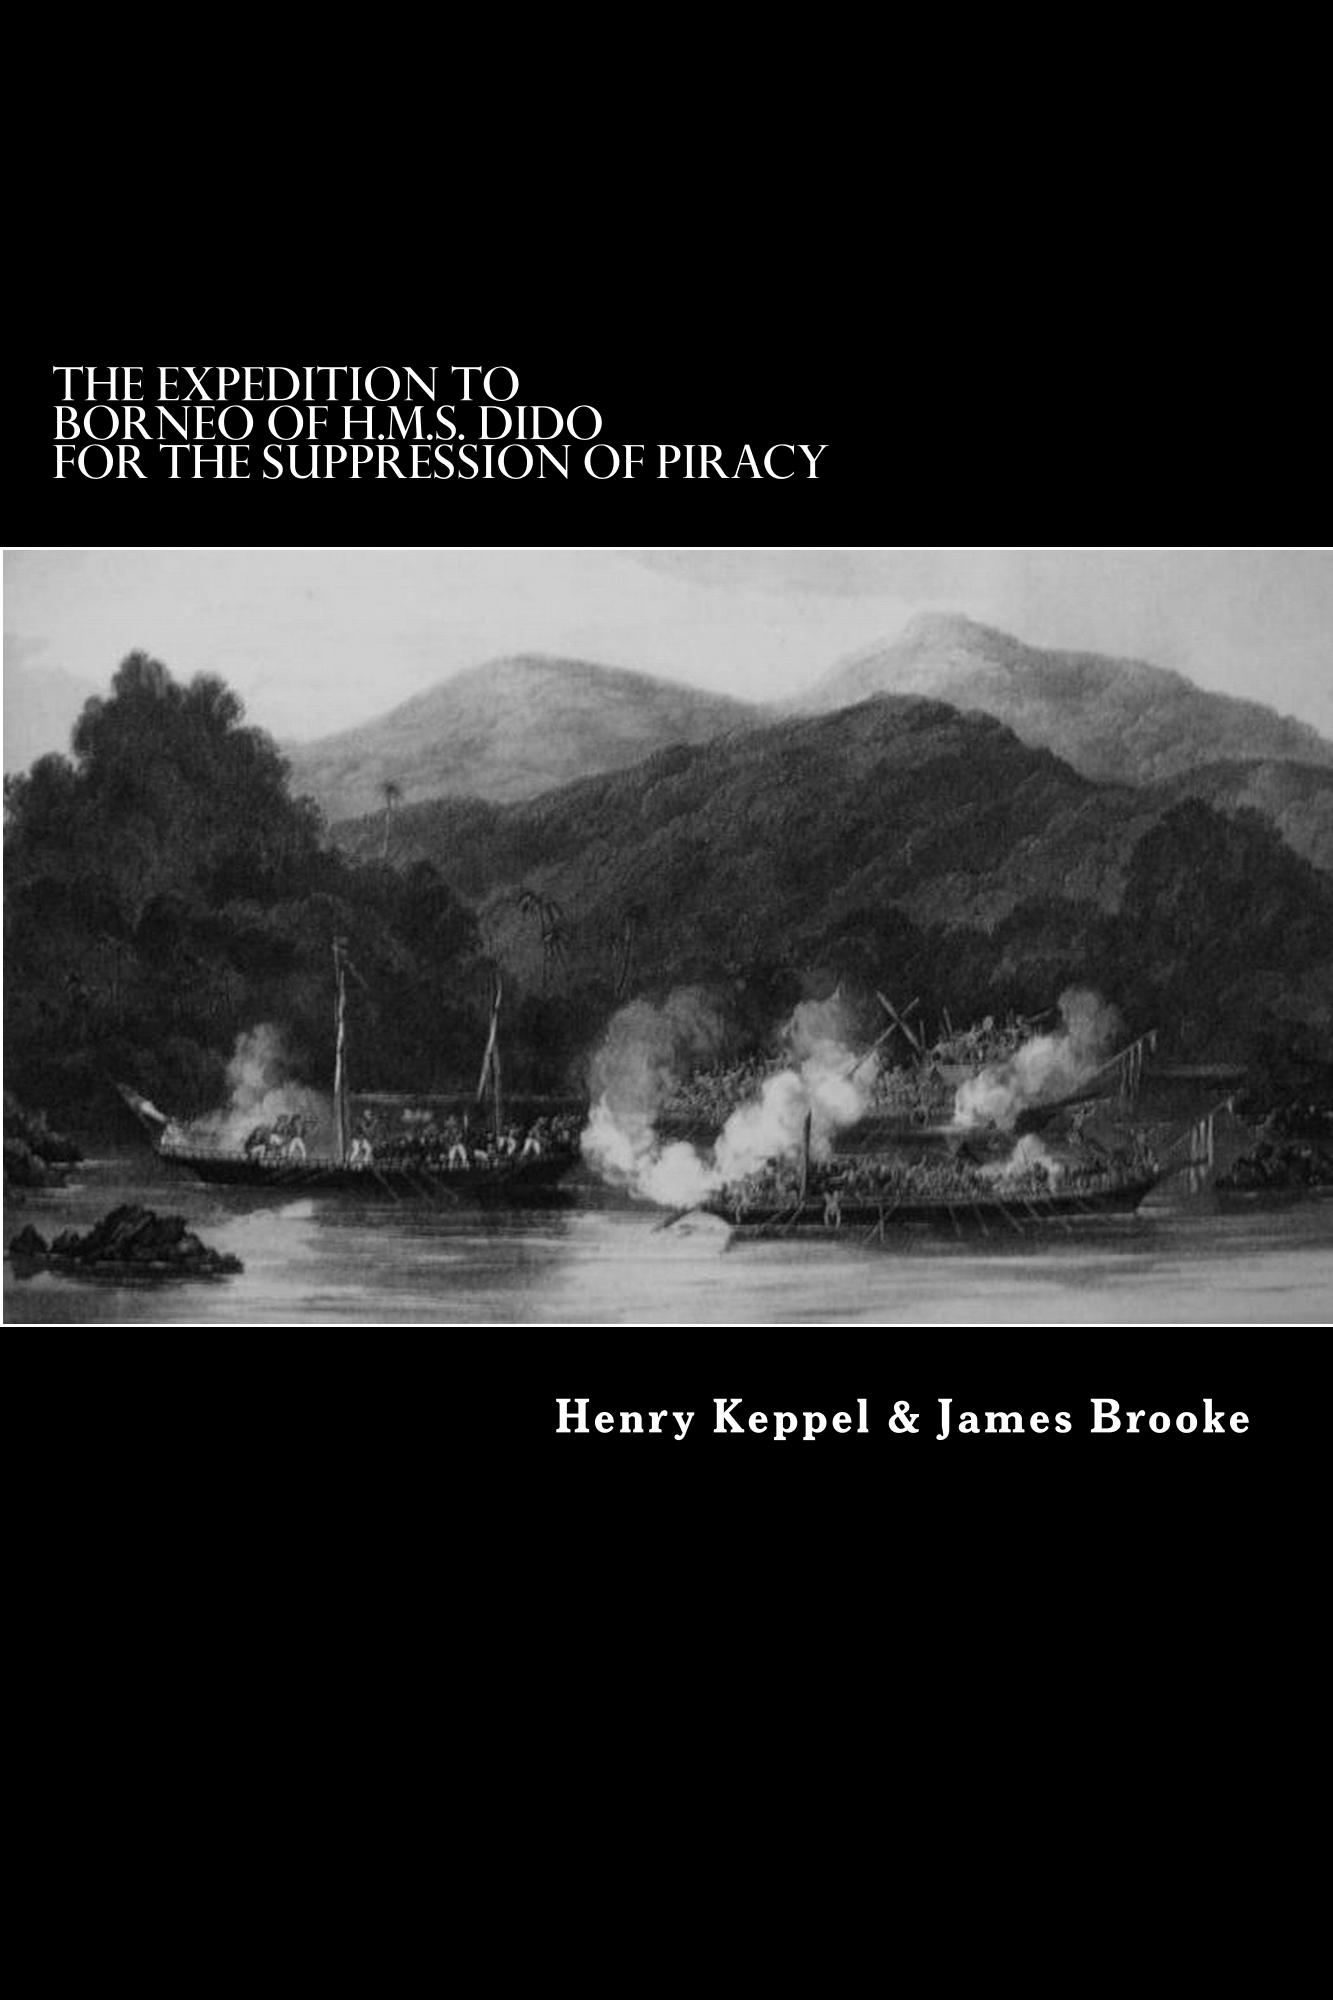 Henry Keppel - The Expedition to Borneo of H.M.S. Dido for the Suppression of Piracy